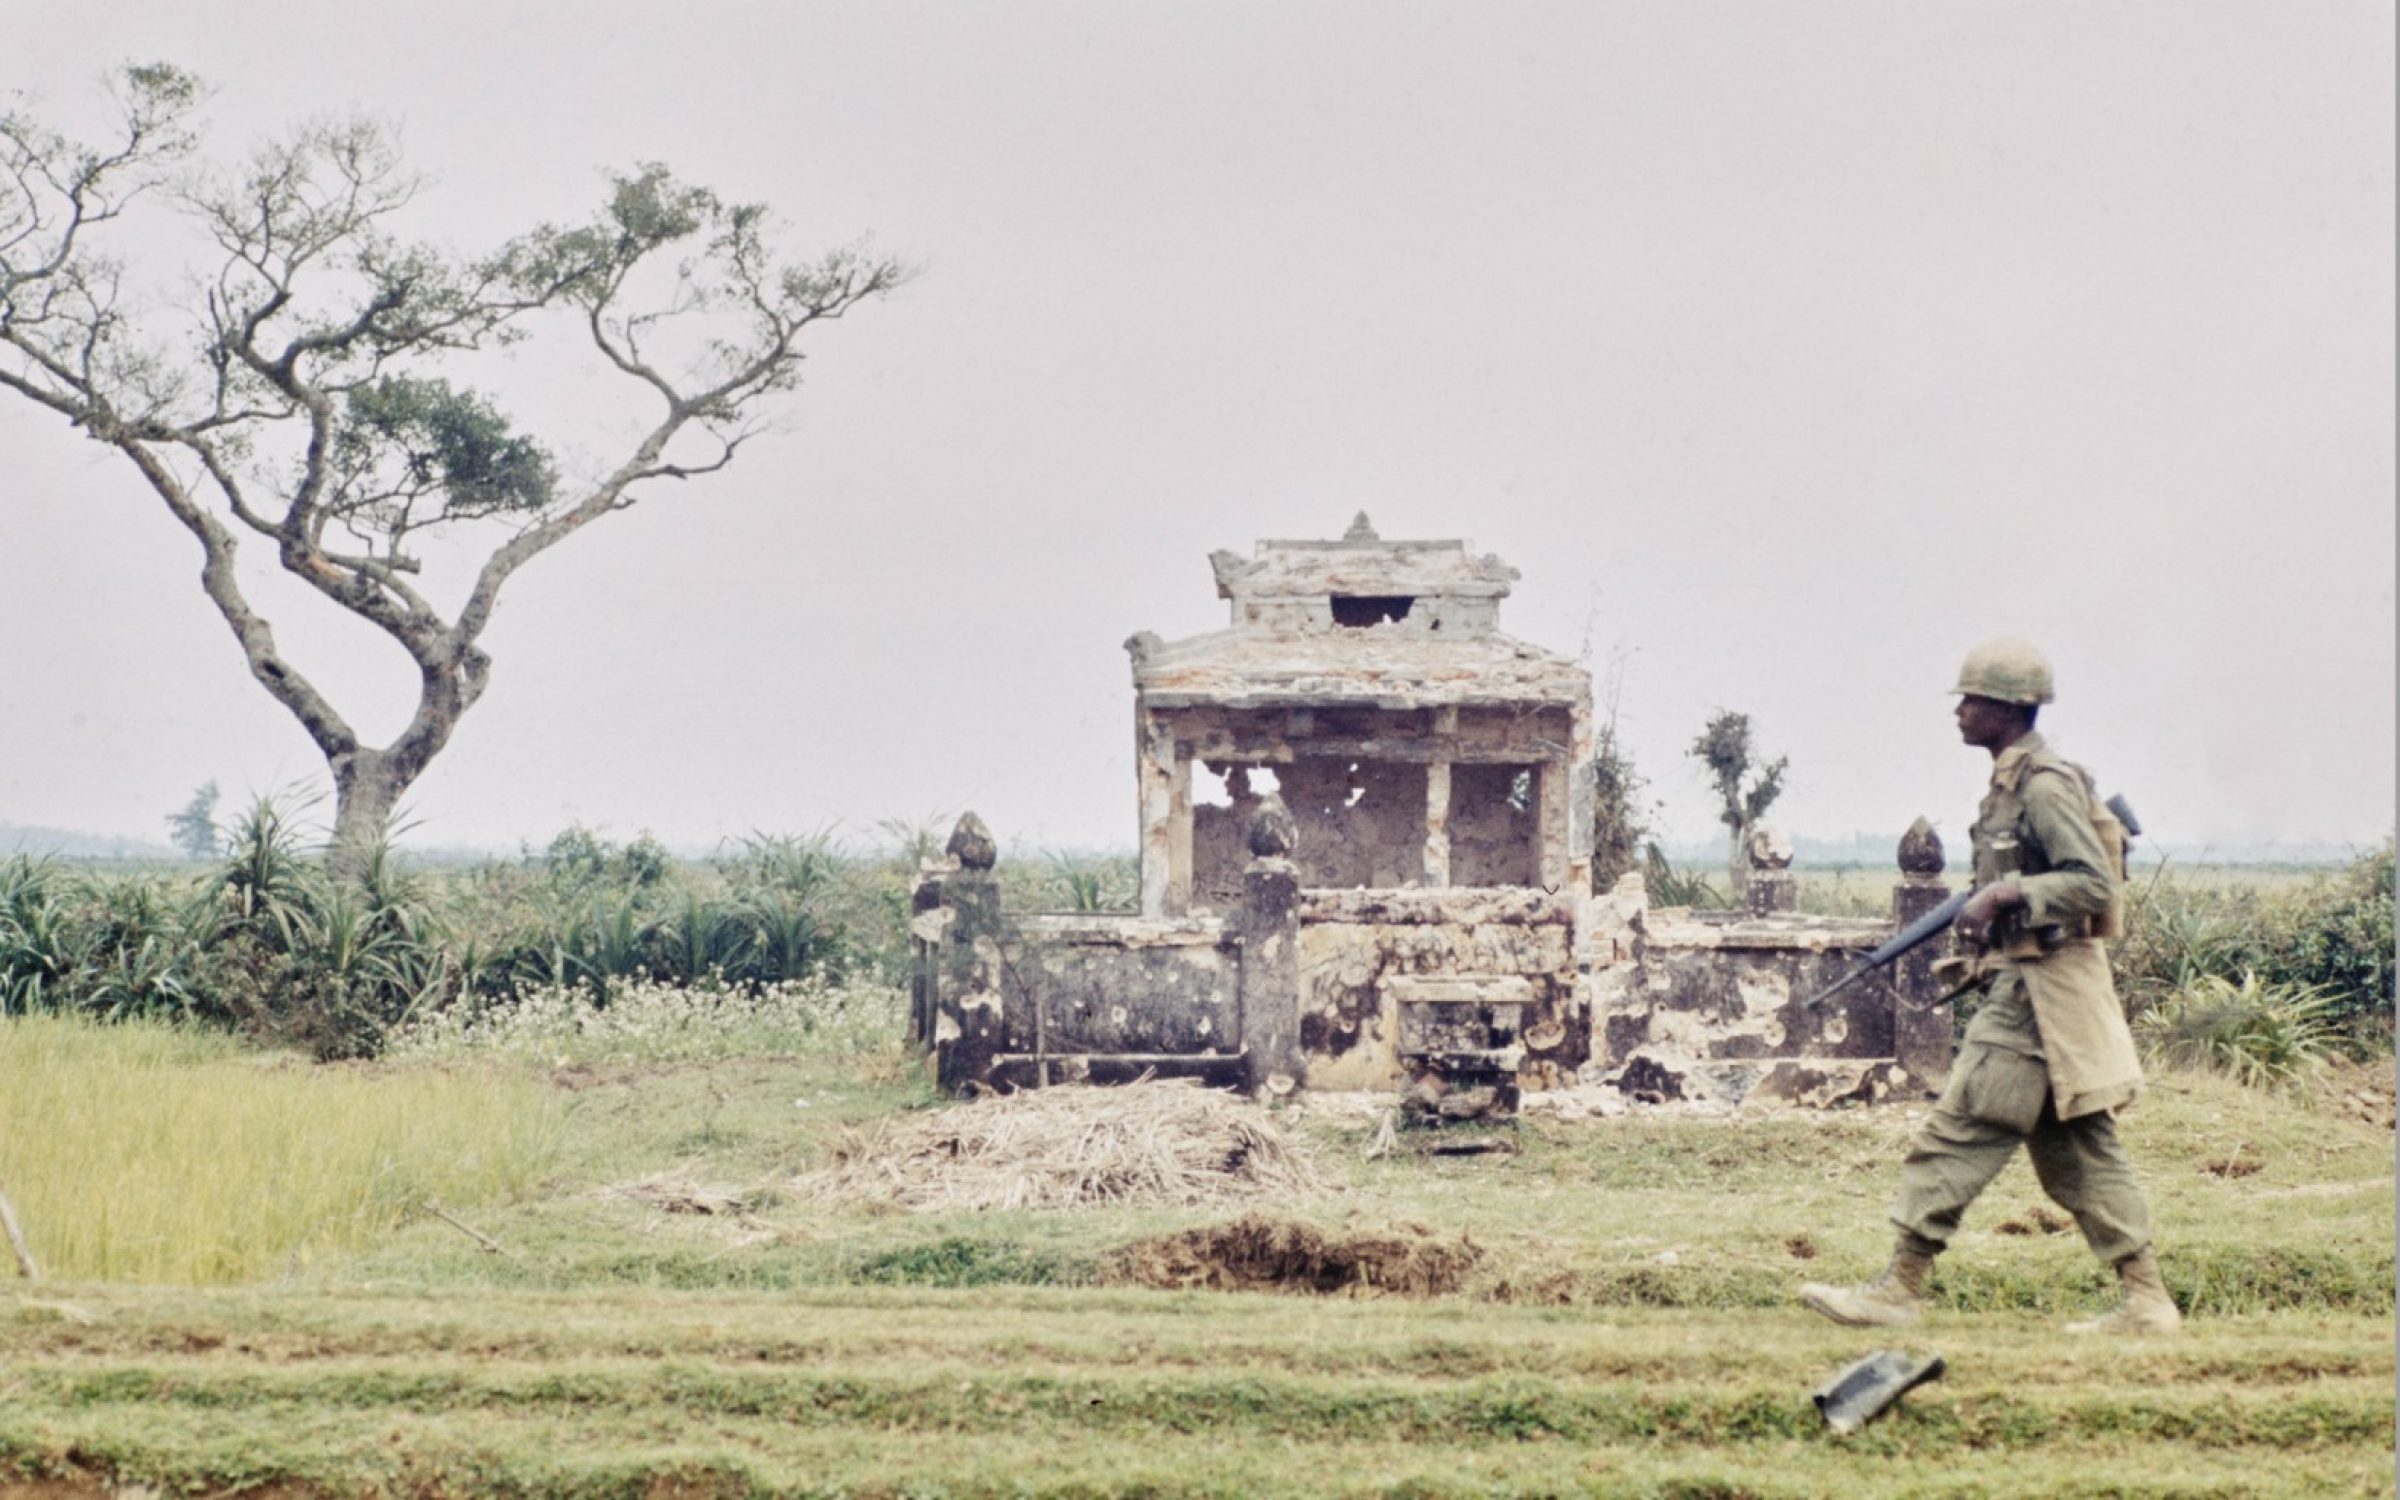 An American soldier passes the ruins of a temple in Hue, Vietnam, 1968. Credit: Bettmann Archive / Getty Images.